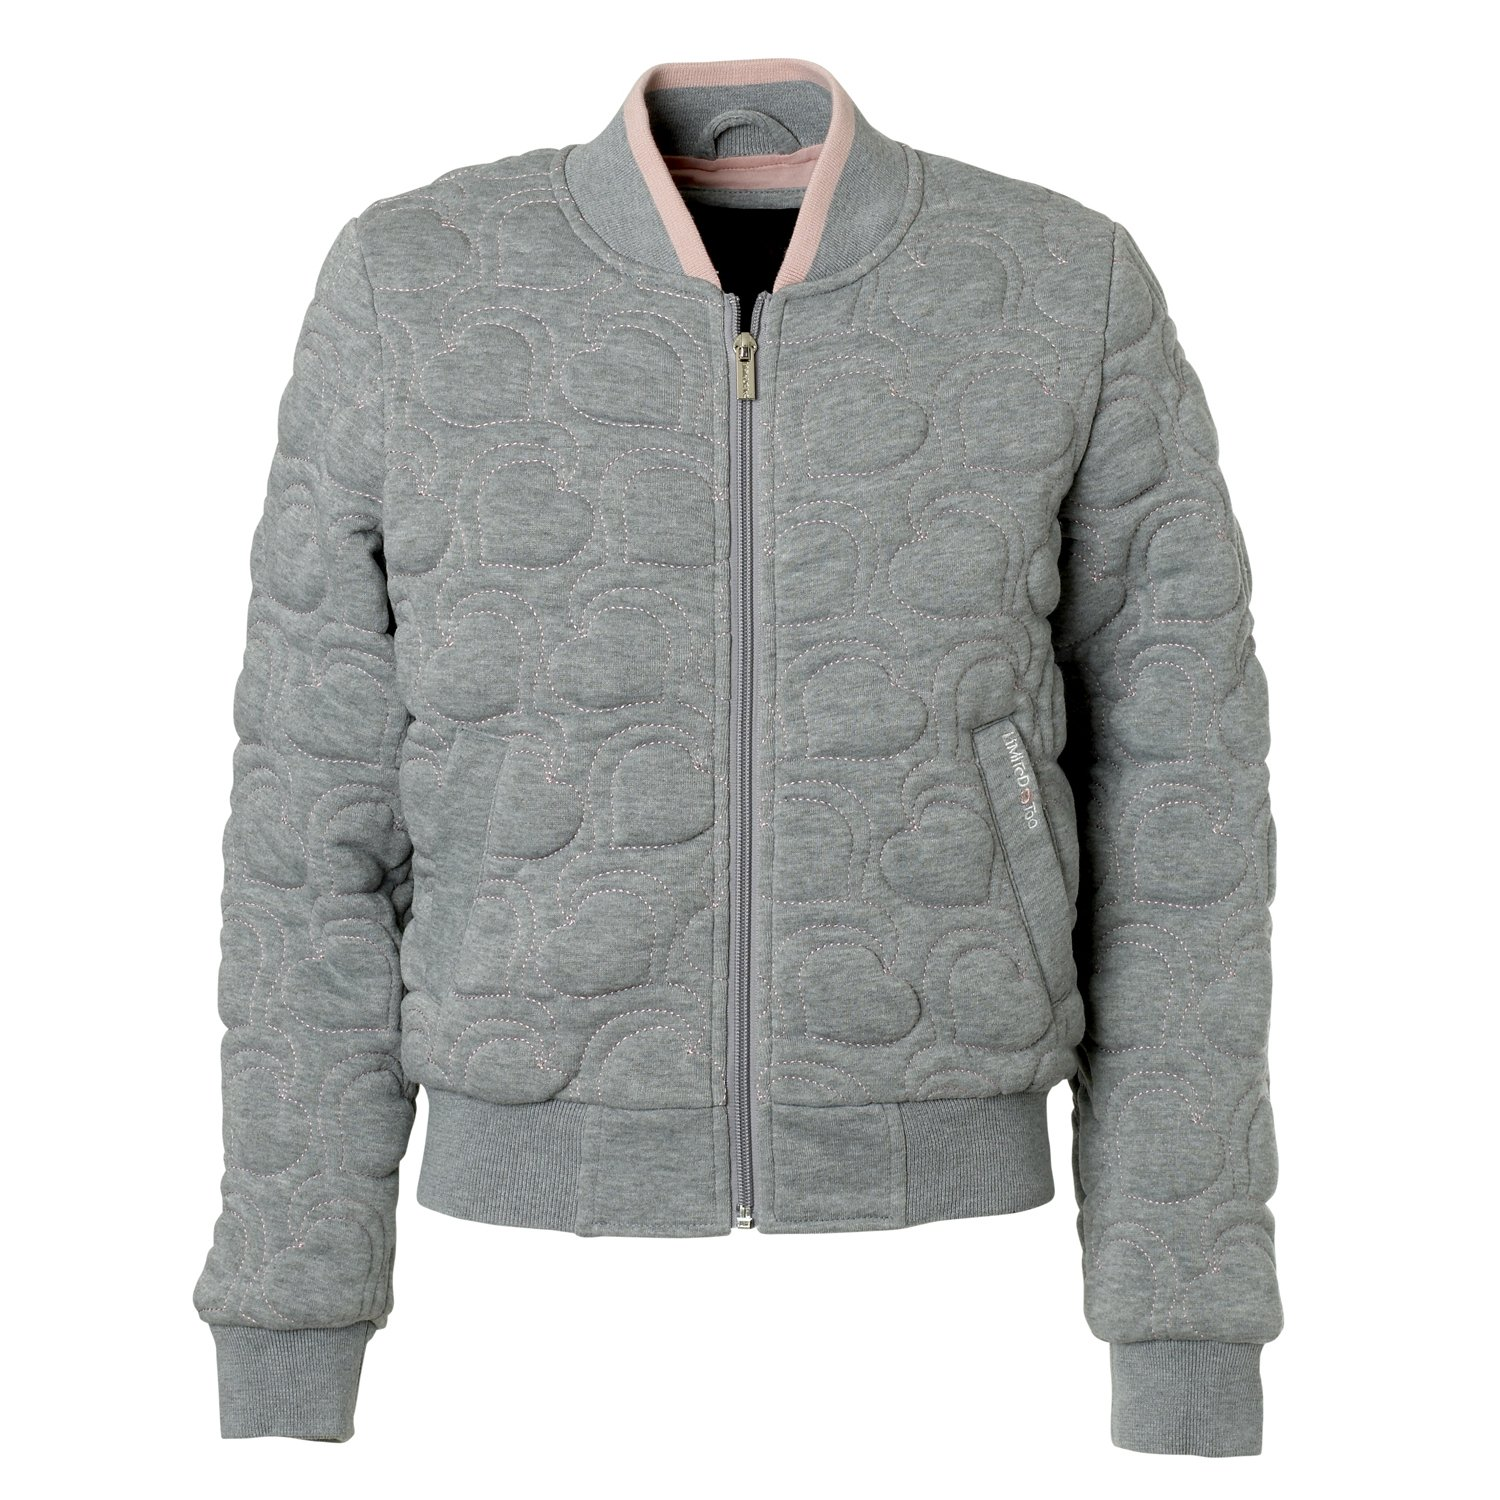 Limited Too Fleece Bomber For Toddler Girls – Structured Heart Shape Quilted